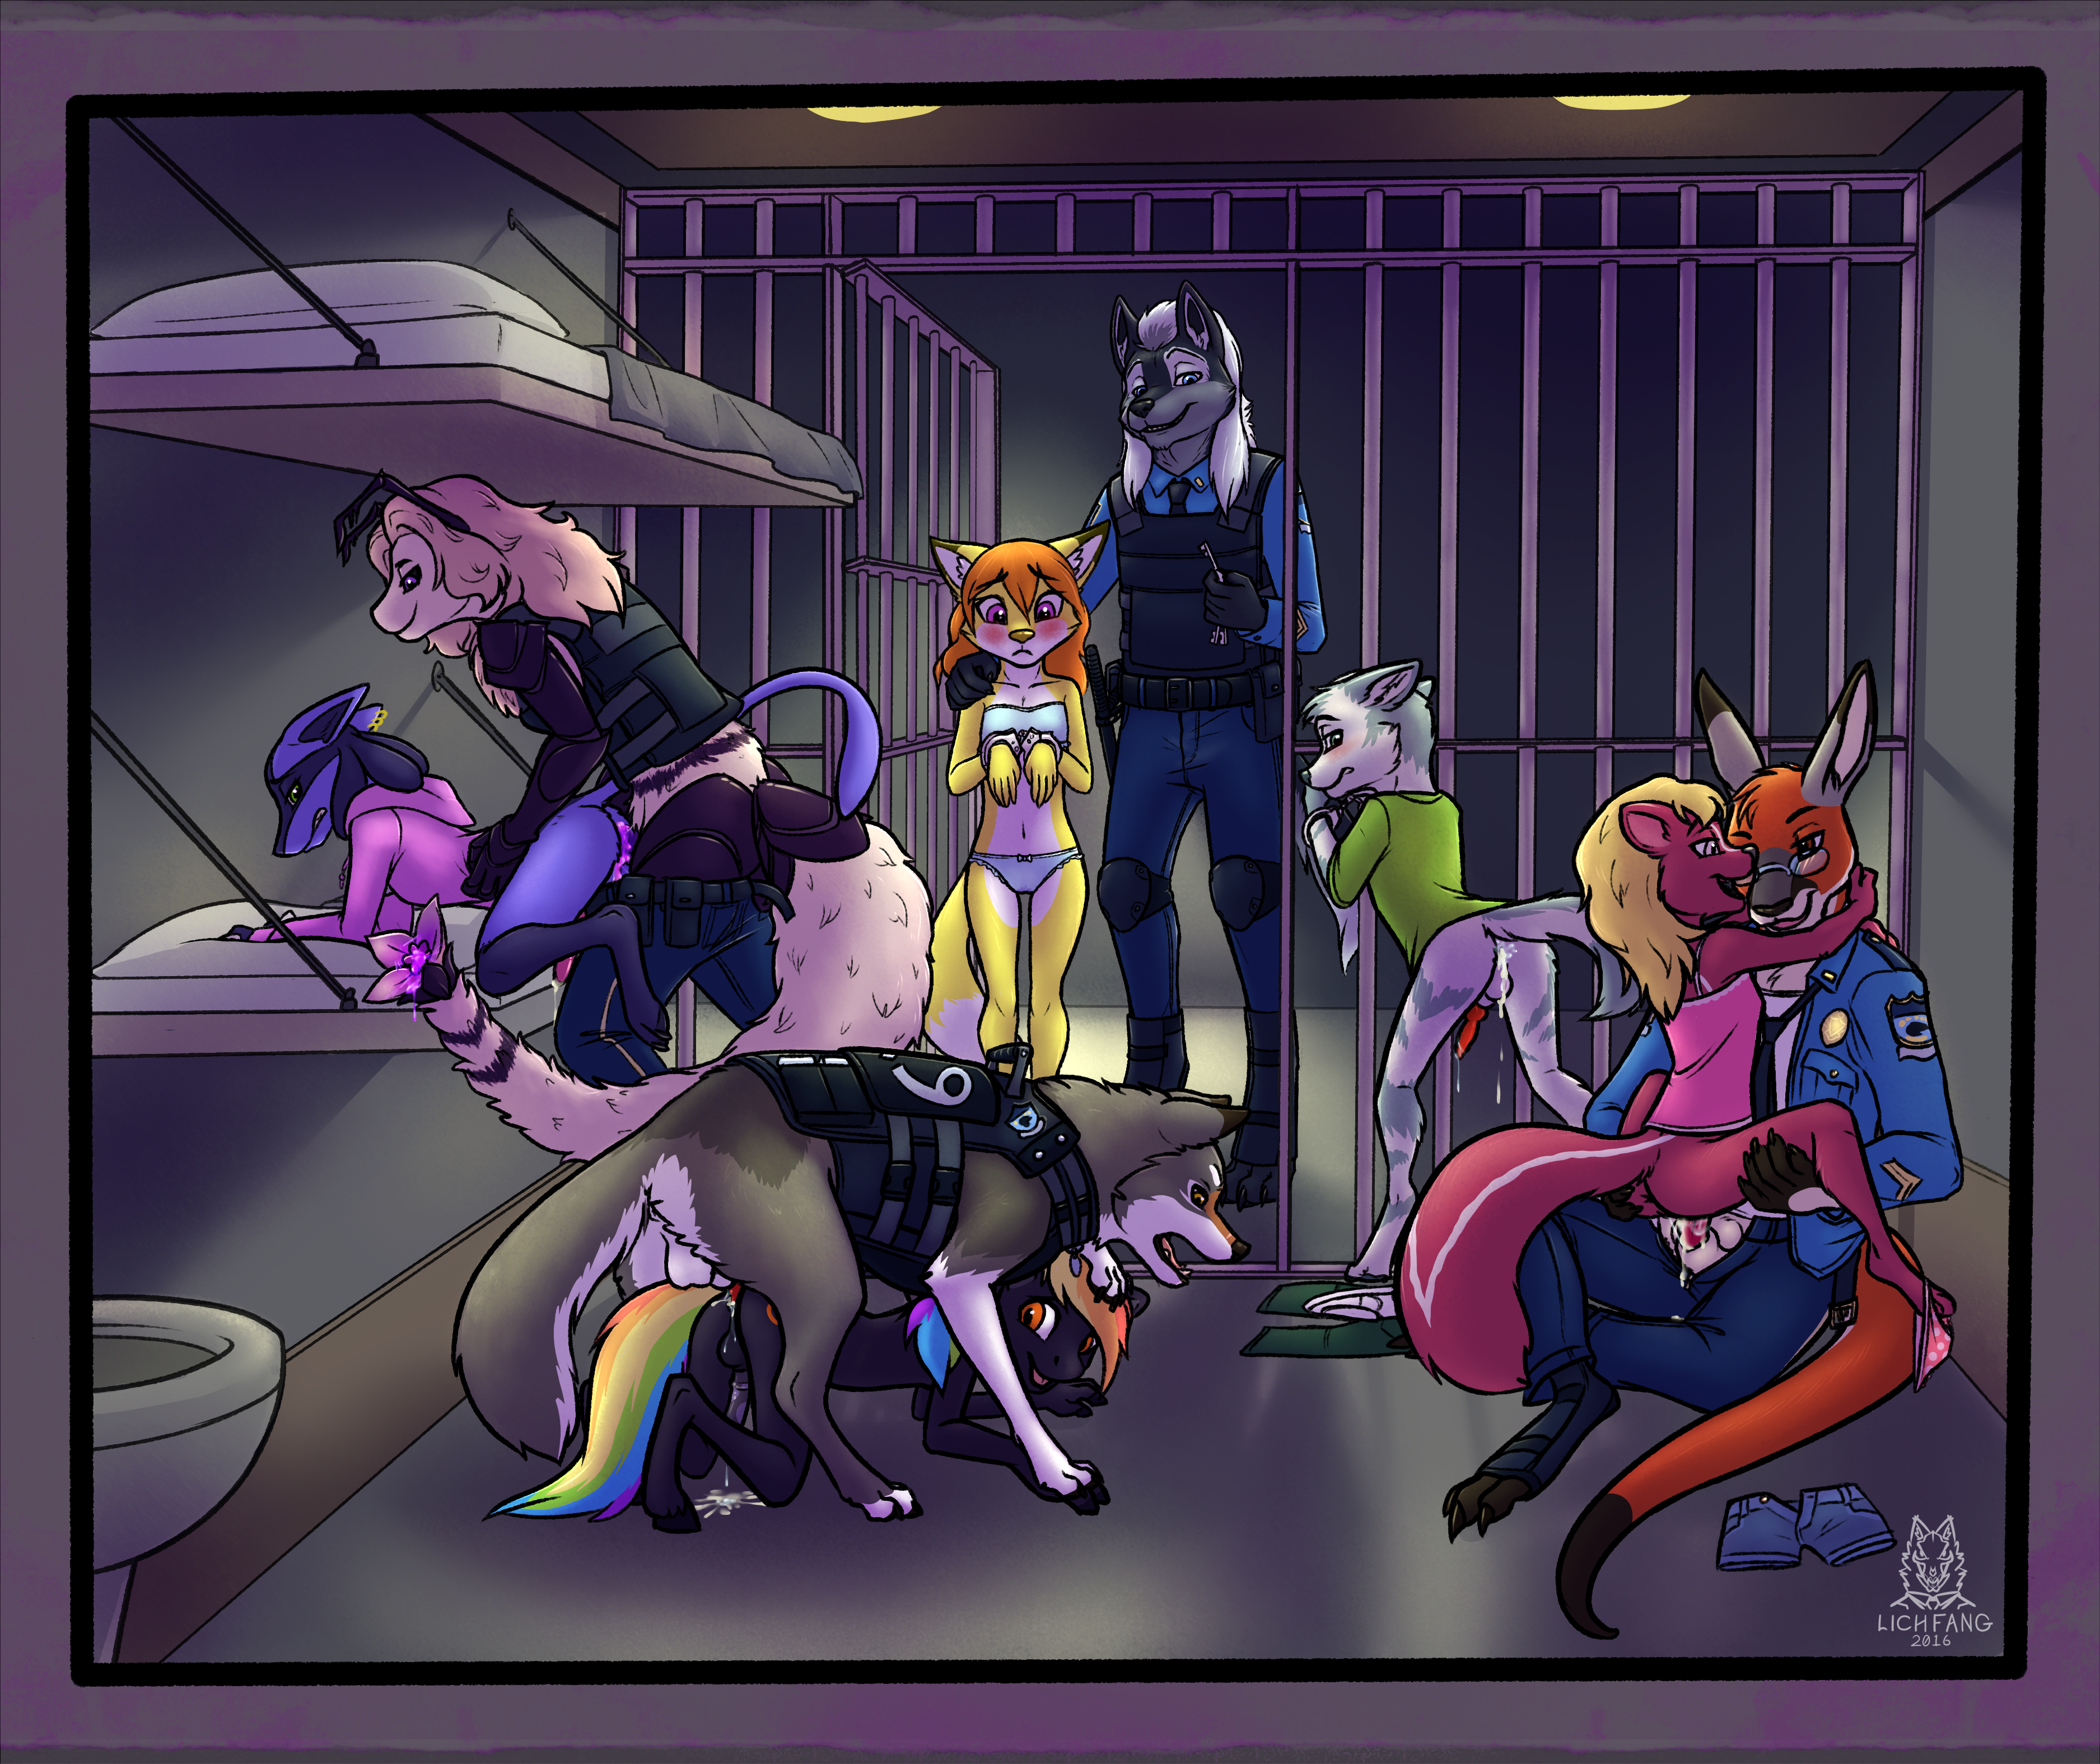 1577074_Lichfang_holding_cell_ych